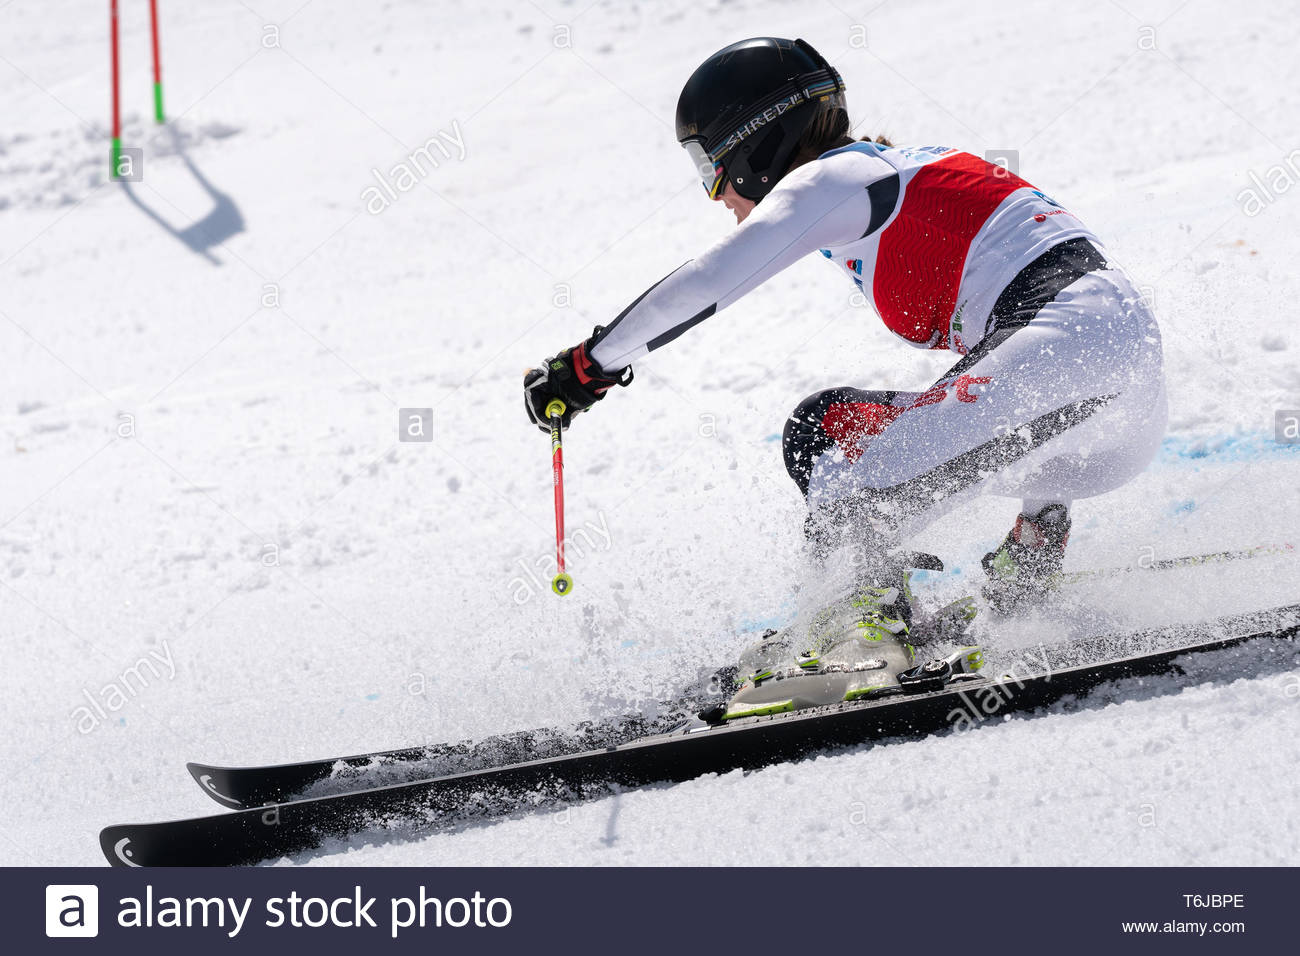 KAMCHATKA PENINSULA, RUSSIAN FEDERATION - APRIL 1, 2019: Mountain skier Golenkova Valentina (Moscow Region) skiing down snowy mountain slope. Russian  - Stock Image